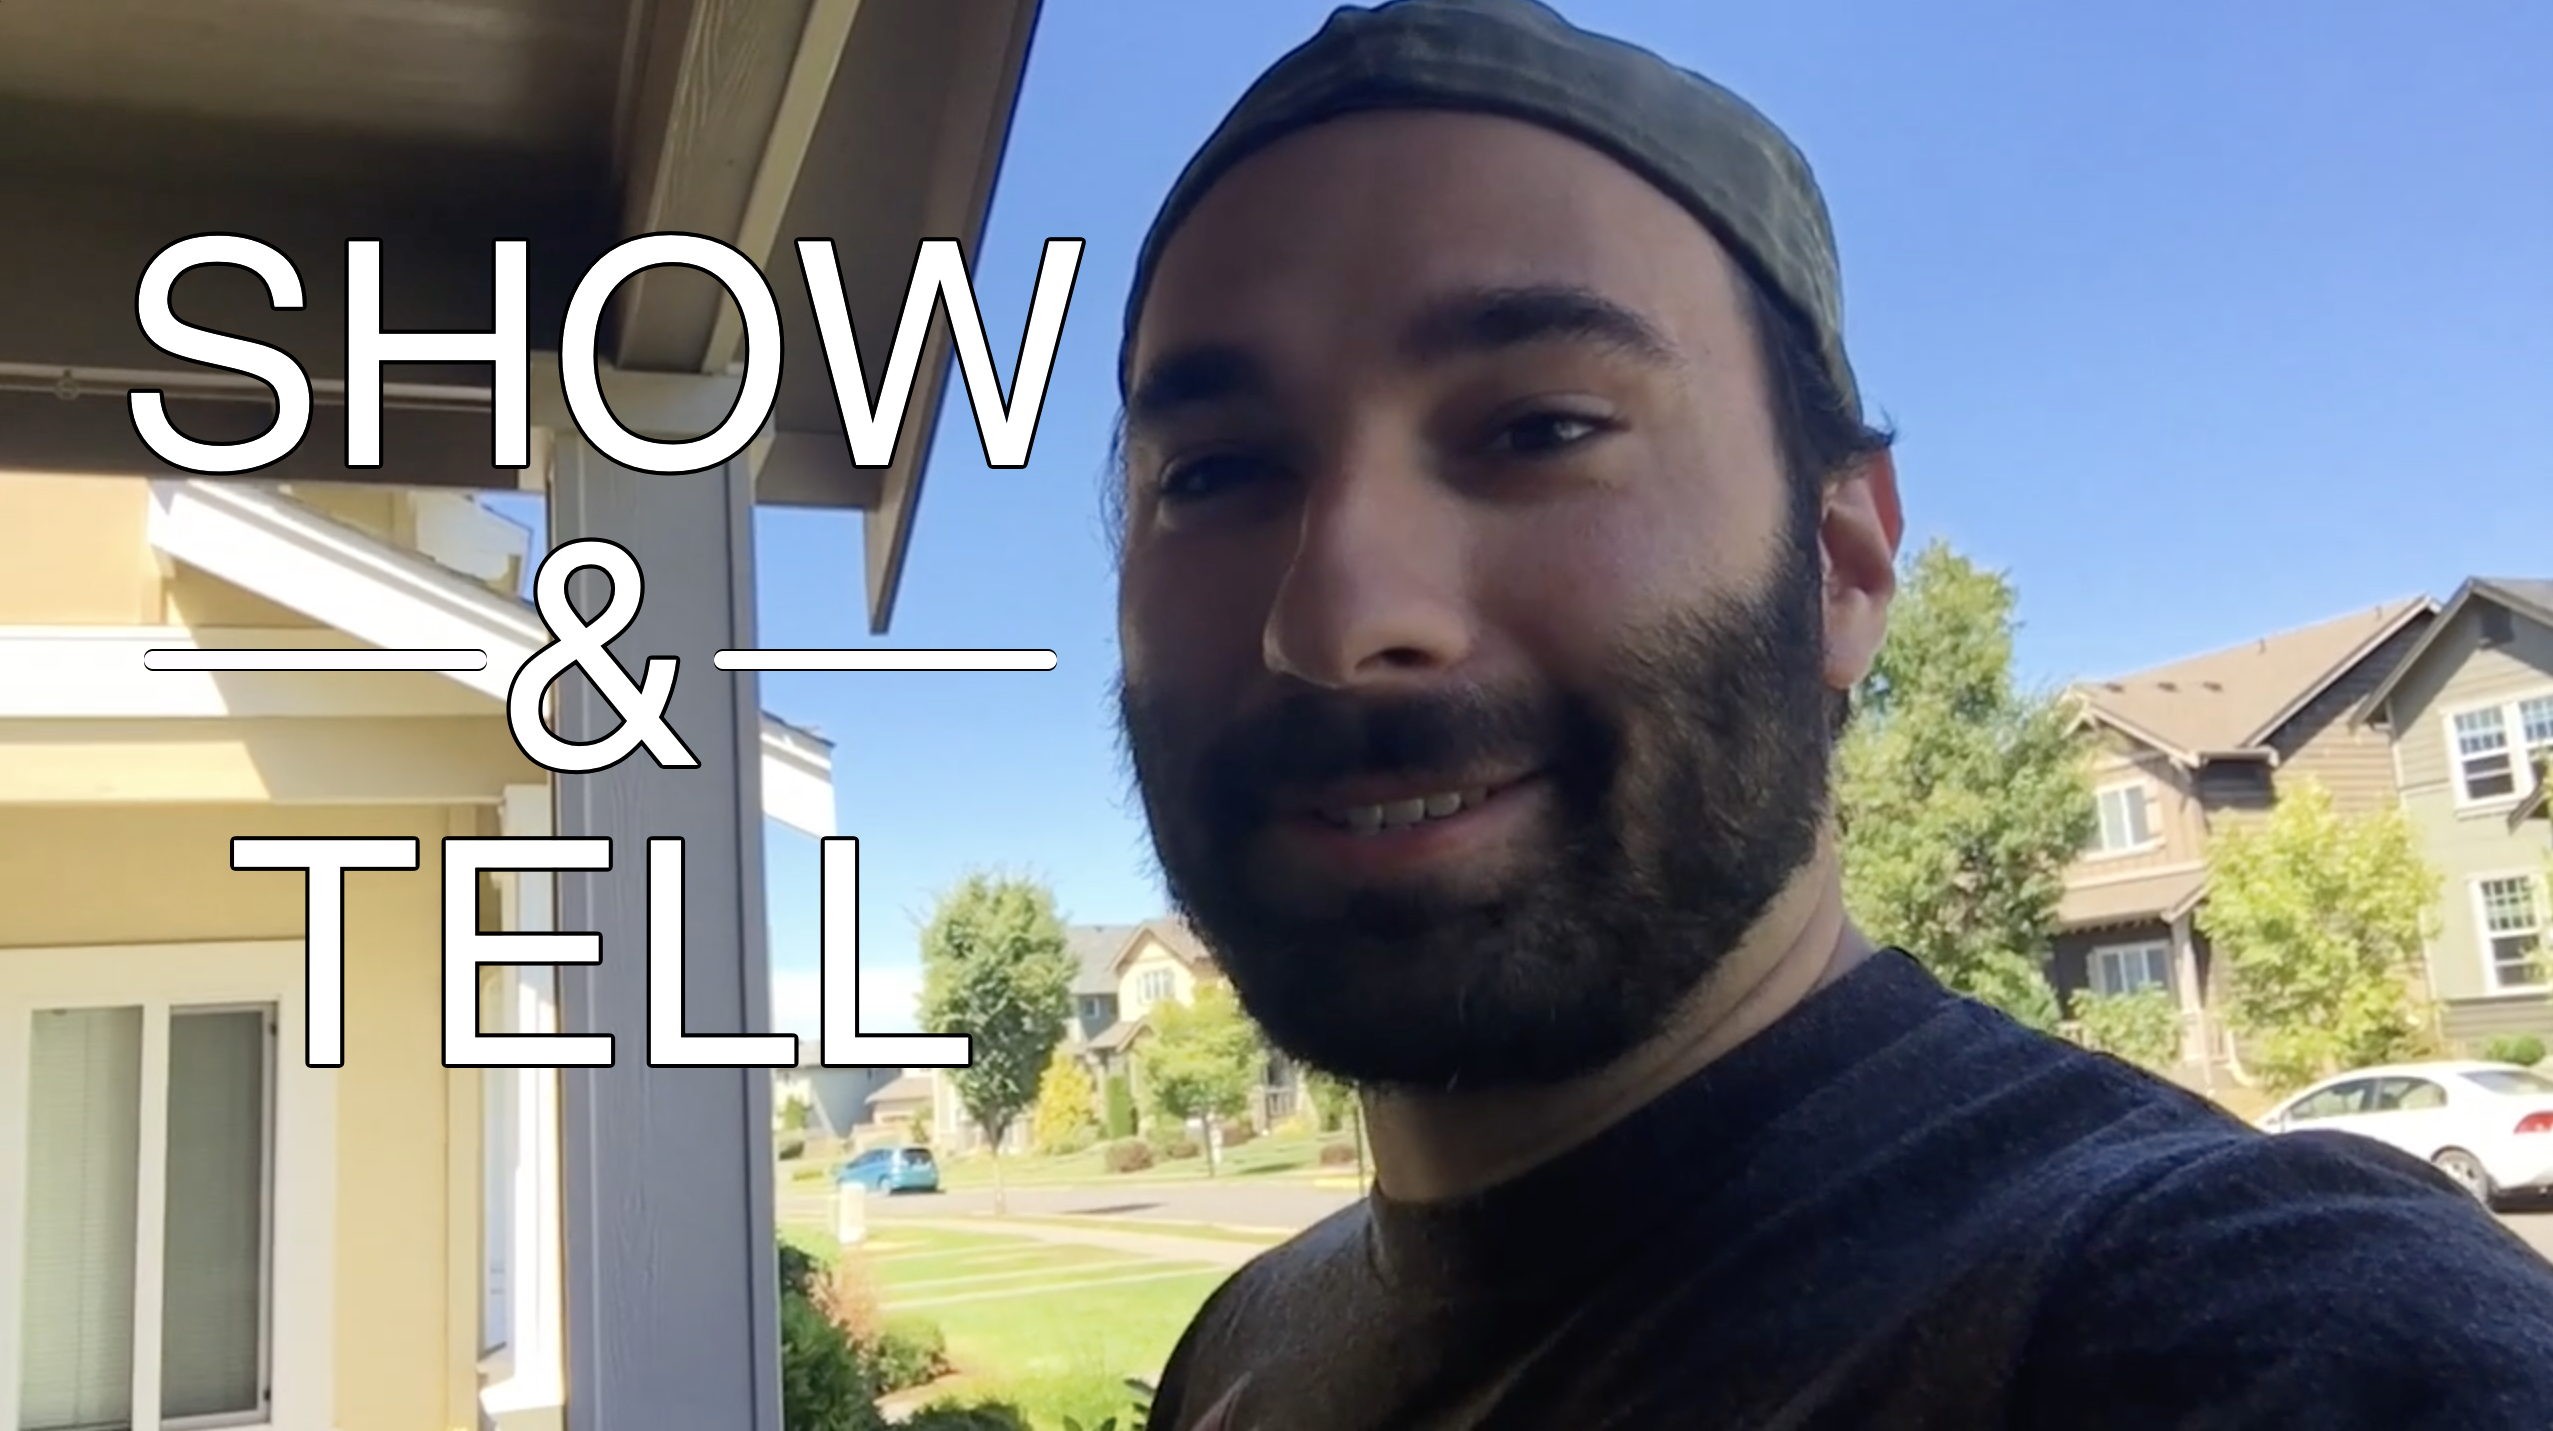 Show & Tell Episode 1: Hot Wheels, Comics, And Ornaments